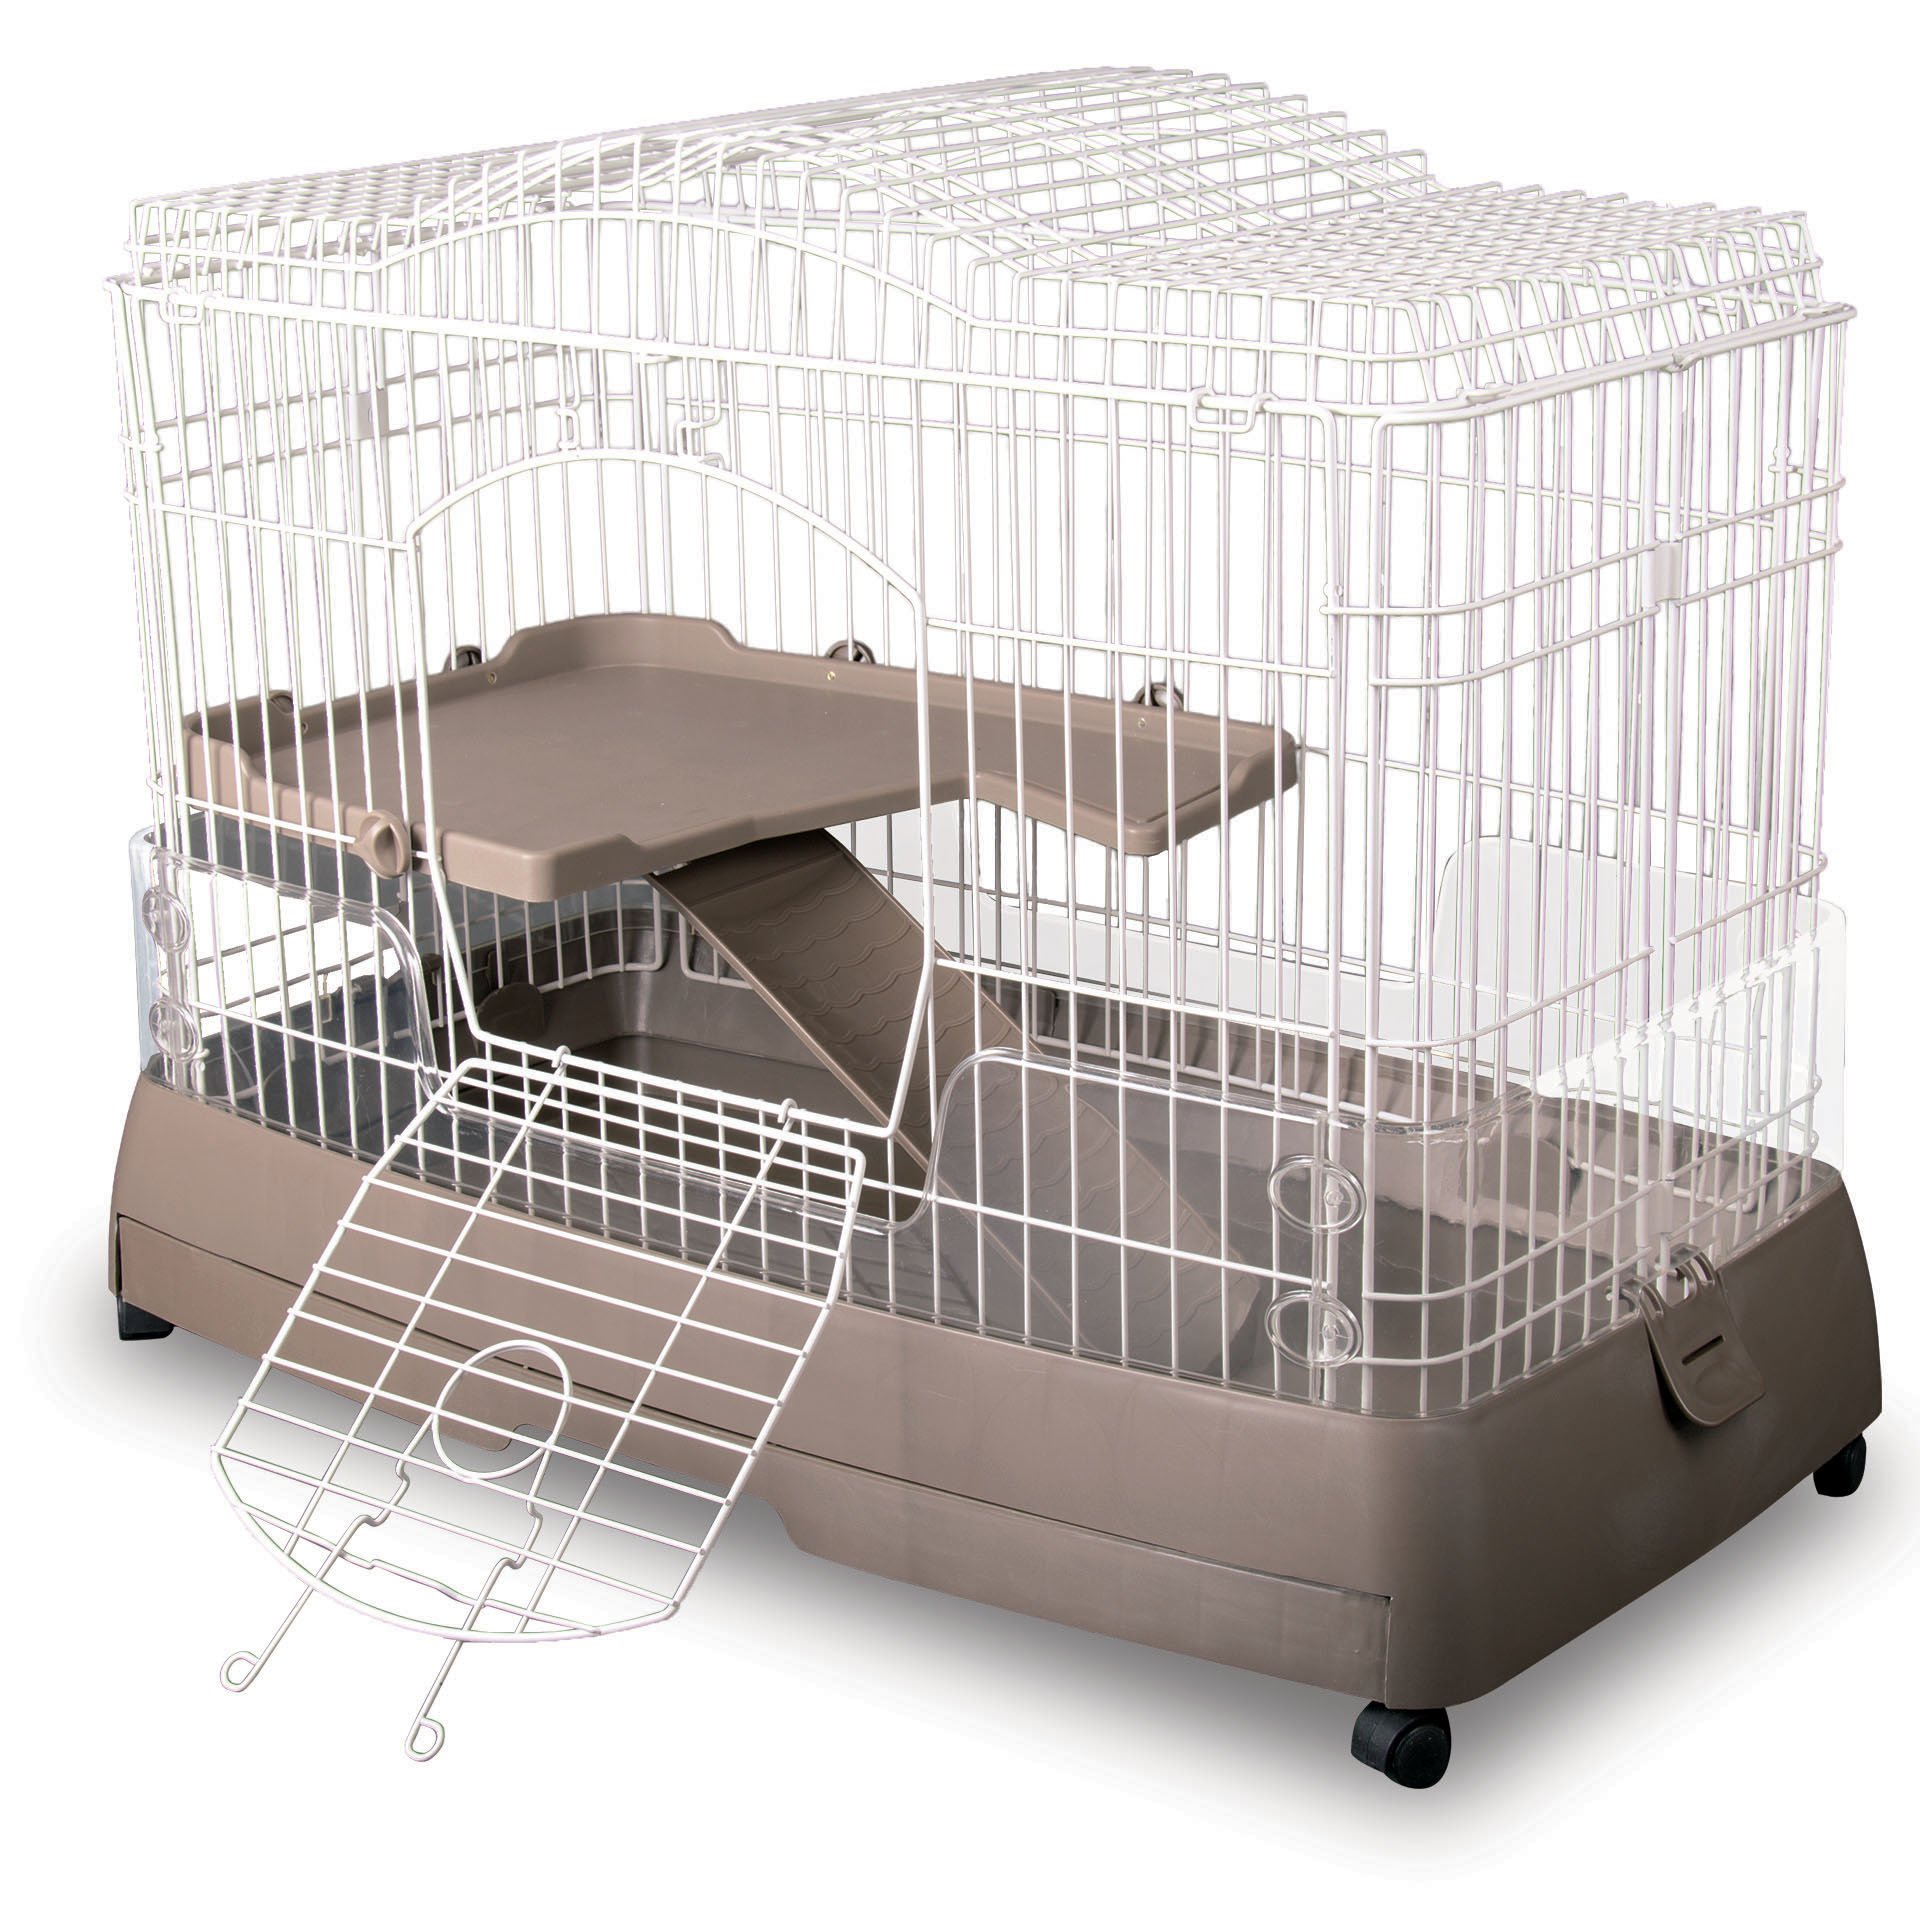 Ware Manufacturing Level 2 Clean Living Cage for Small Pets